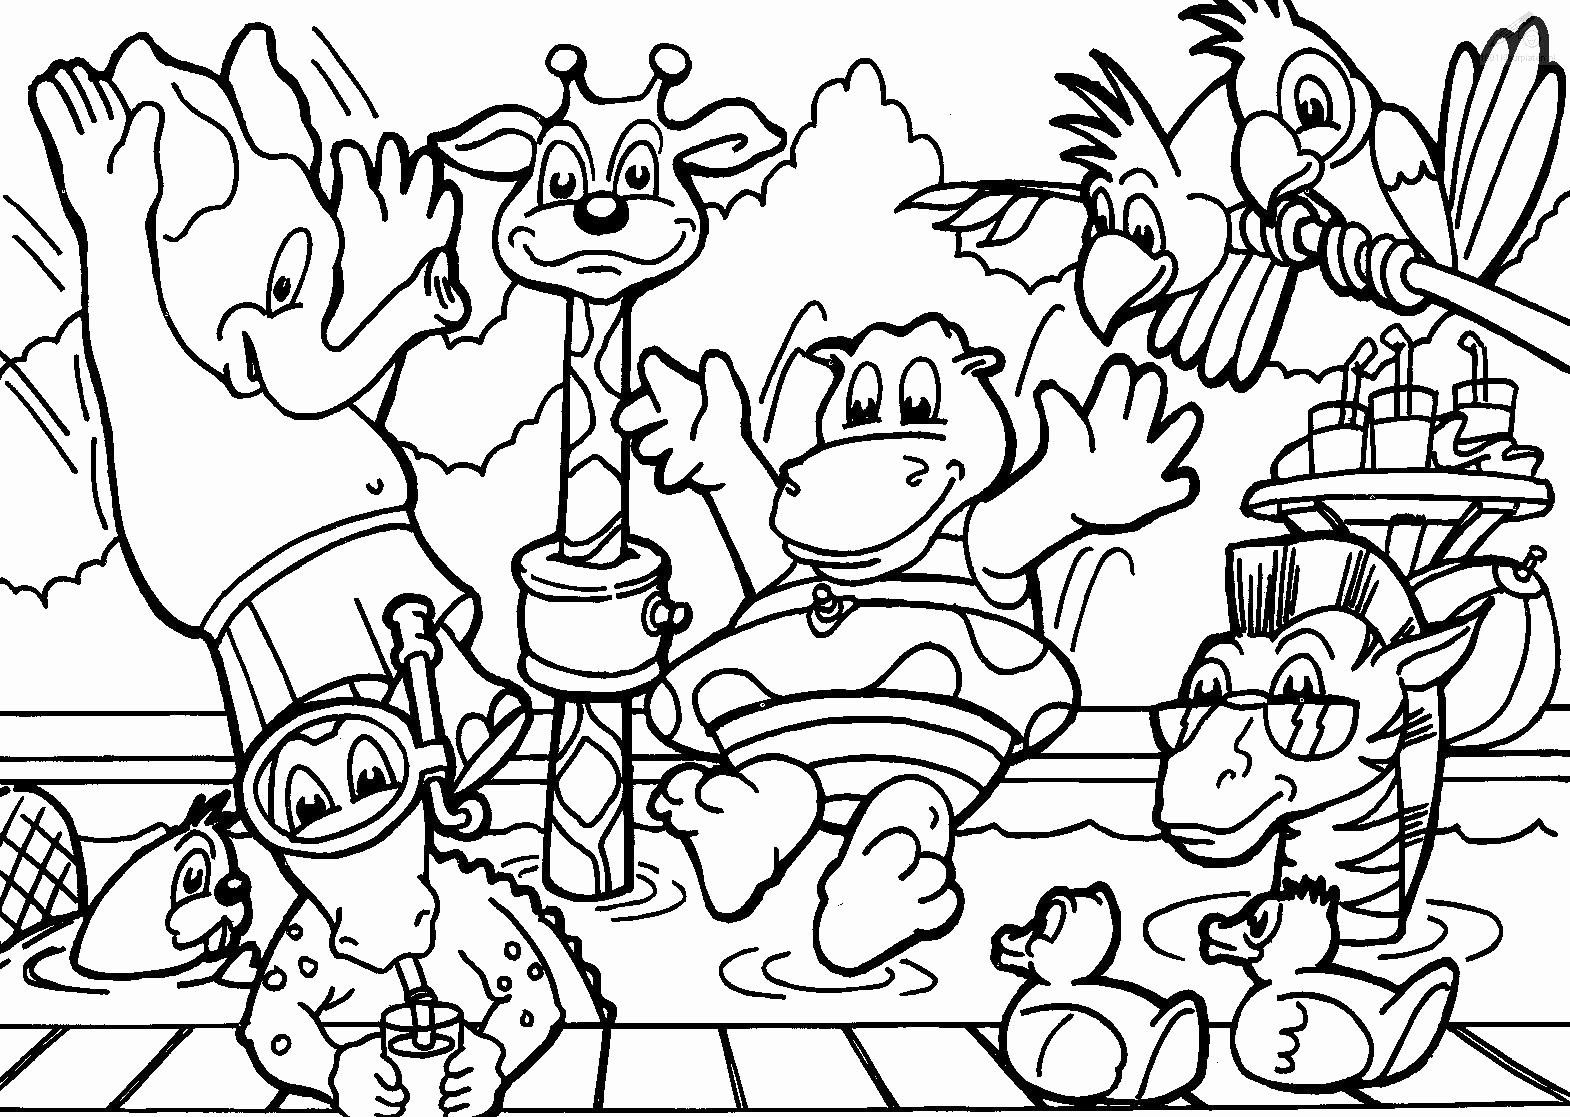 - Childrens Animal Coloring Pages In 2020 (With Images) Animal